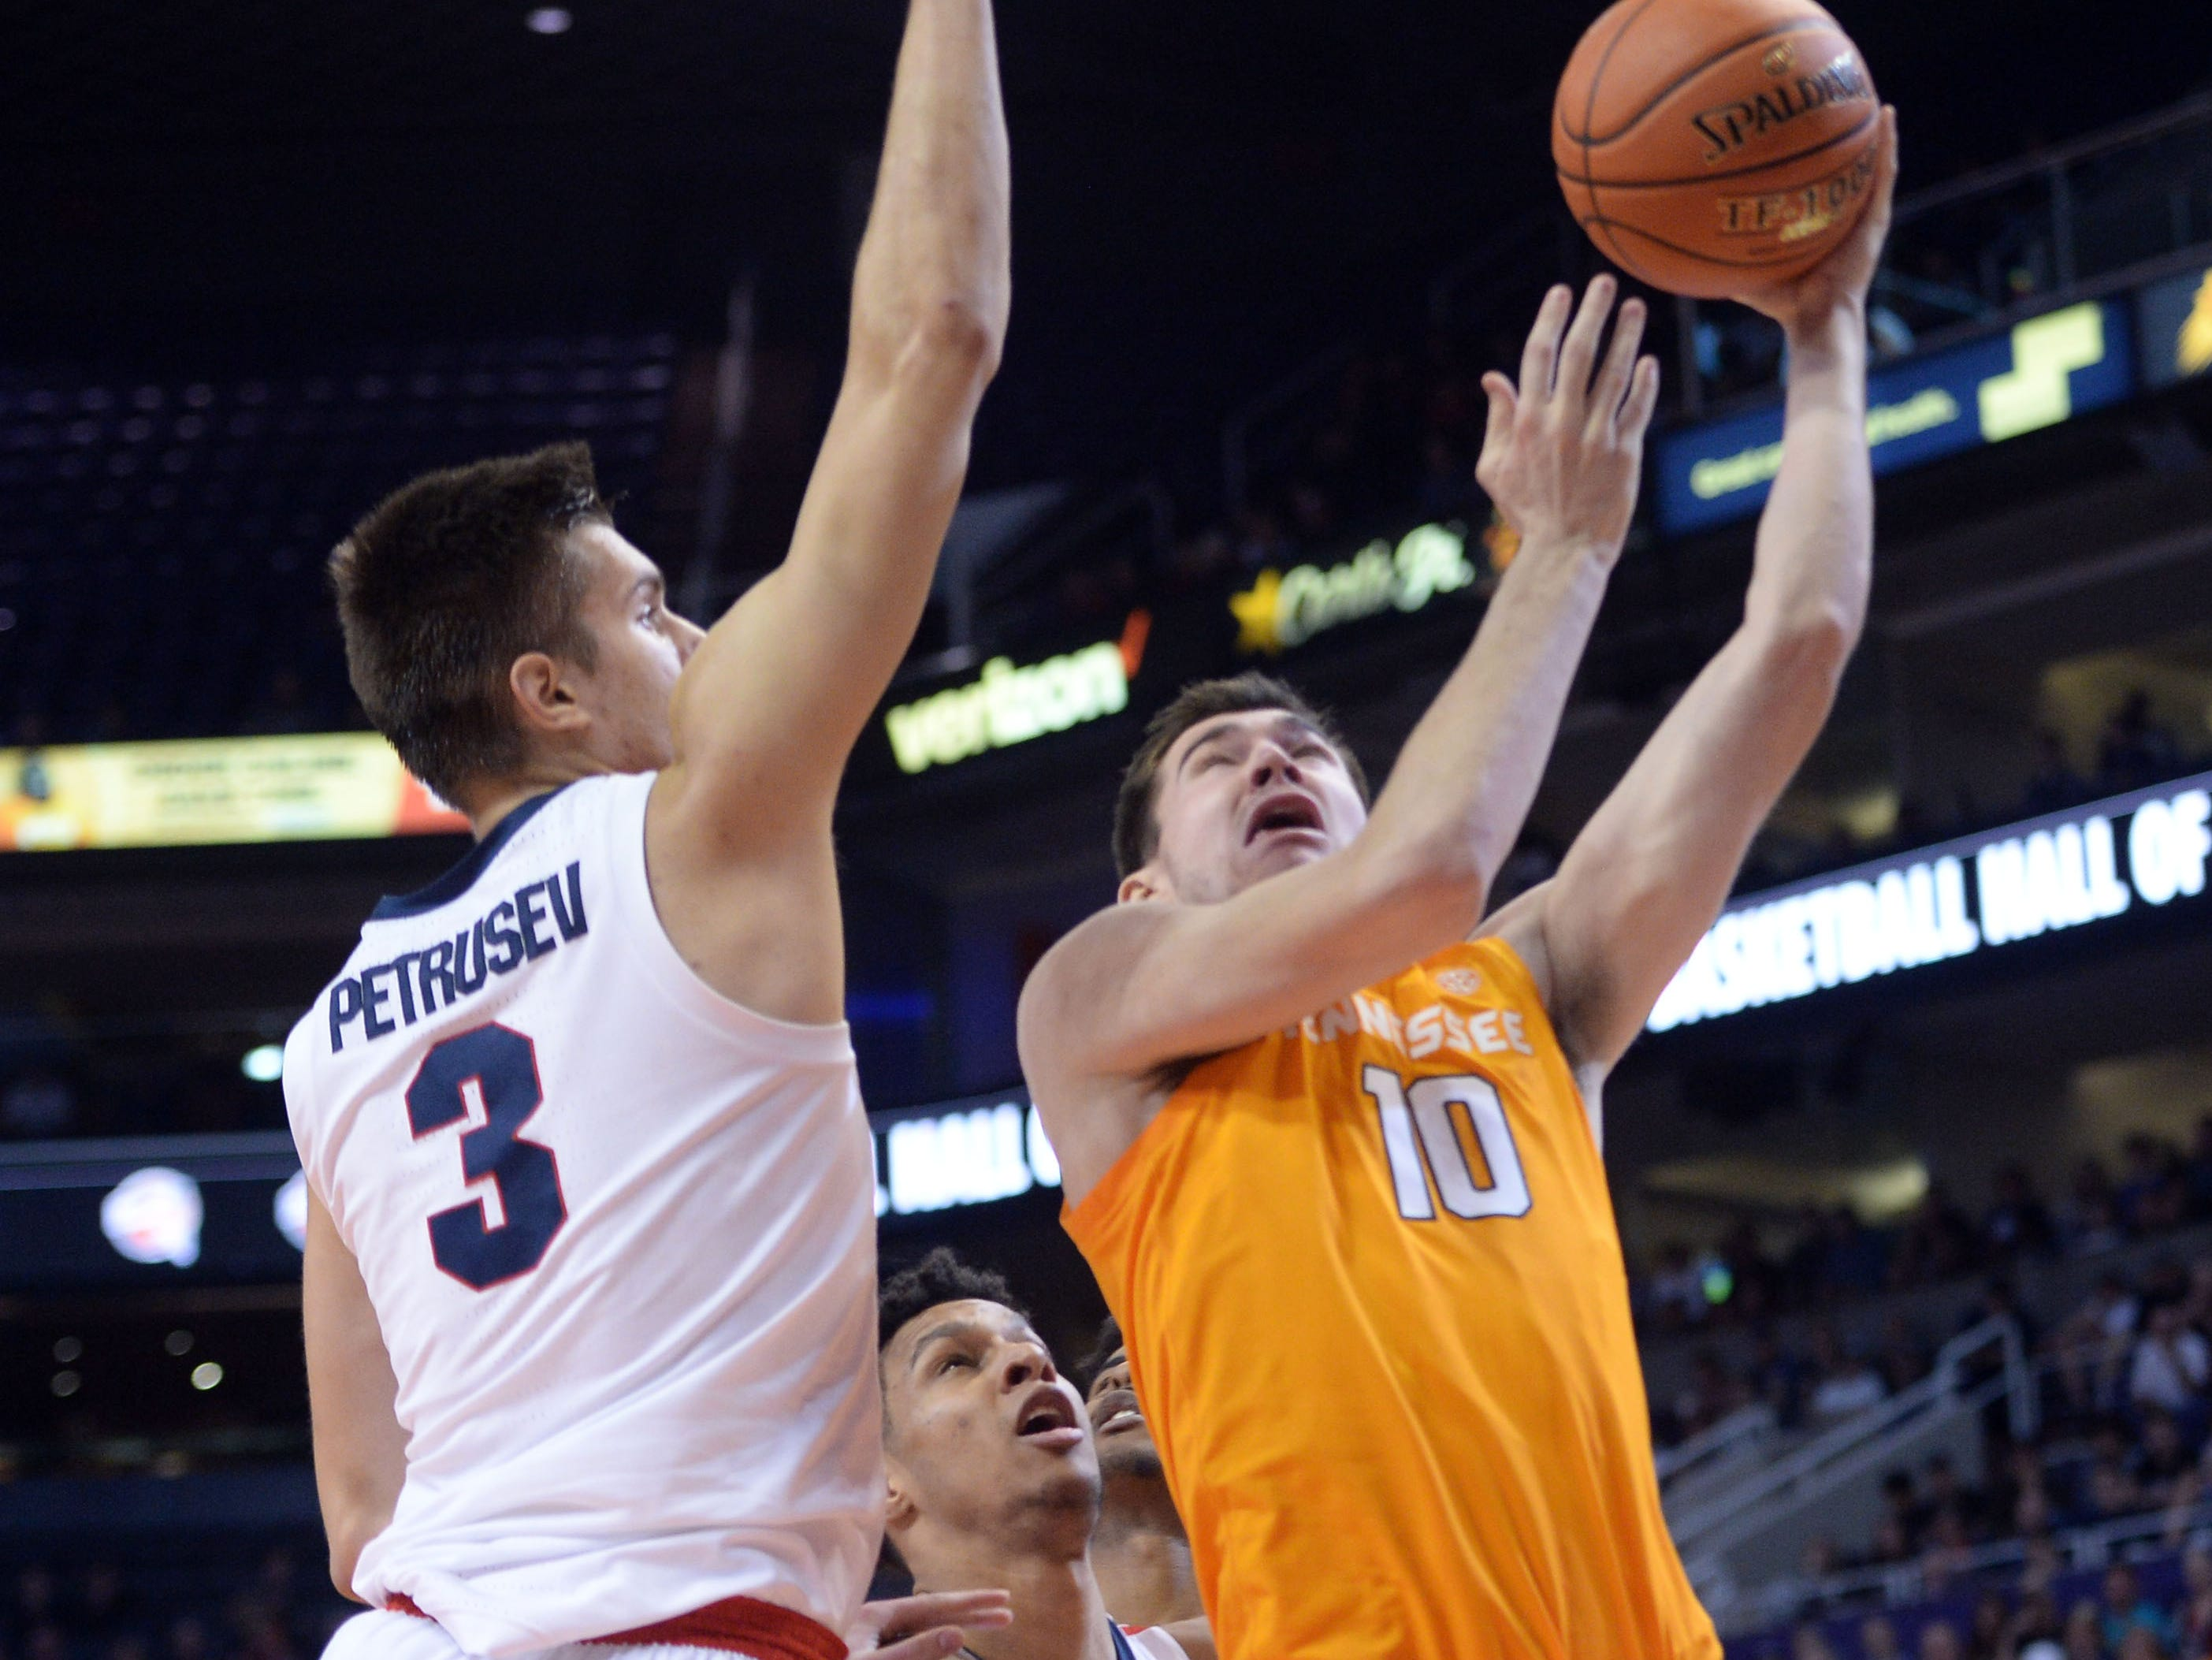 Dec 9, 2018; Phoenix, AZ, USA; Tennessee Volunteers forward John Fulkerson (10) shoots over Gonzaga Bulldogs forward Filip Petrusev (3) during the first half at Talking Stick Resort Arena.